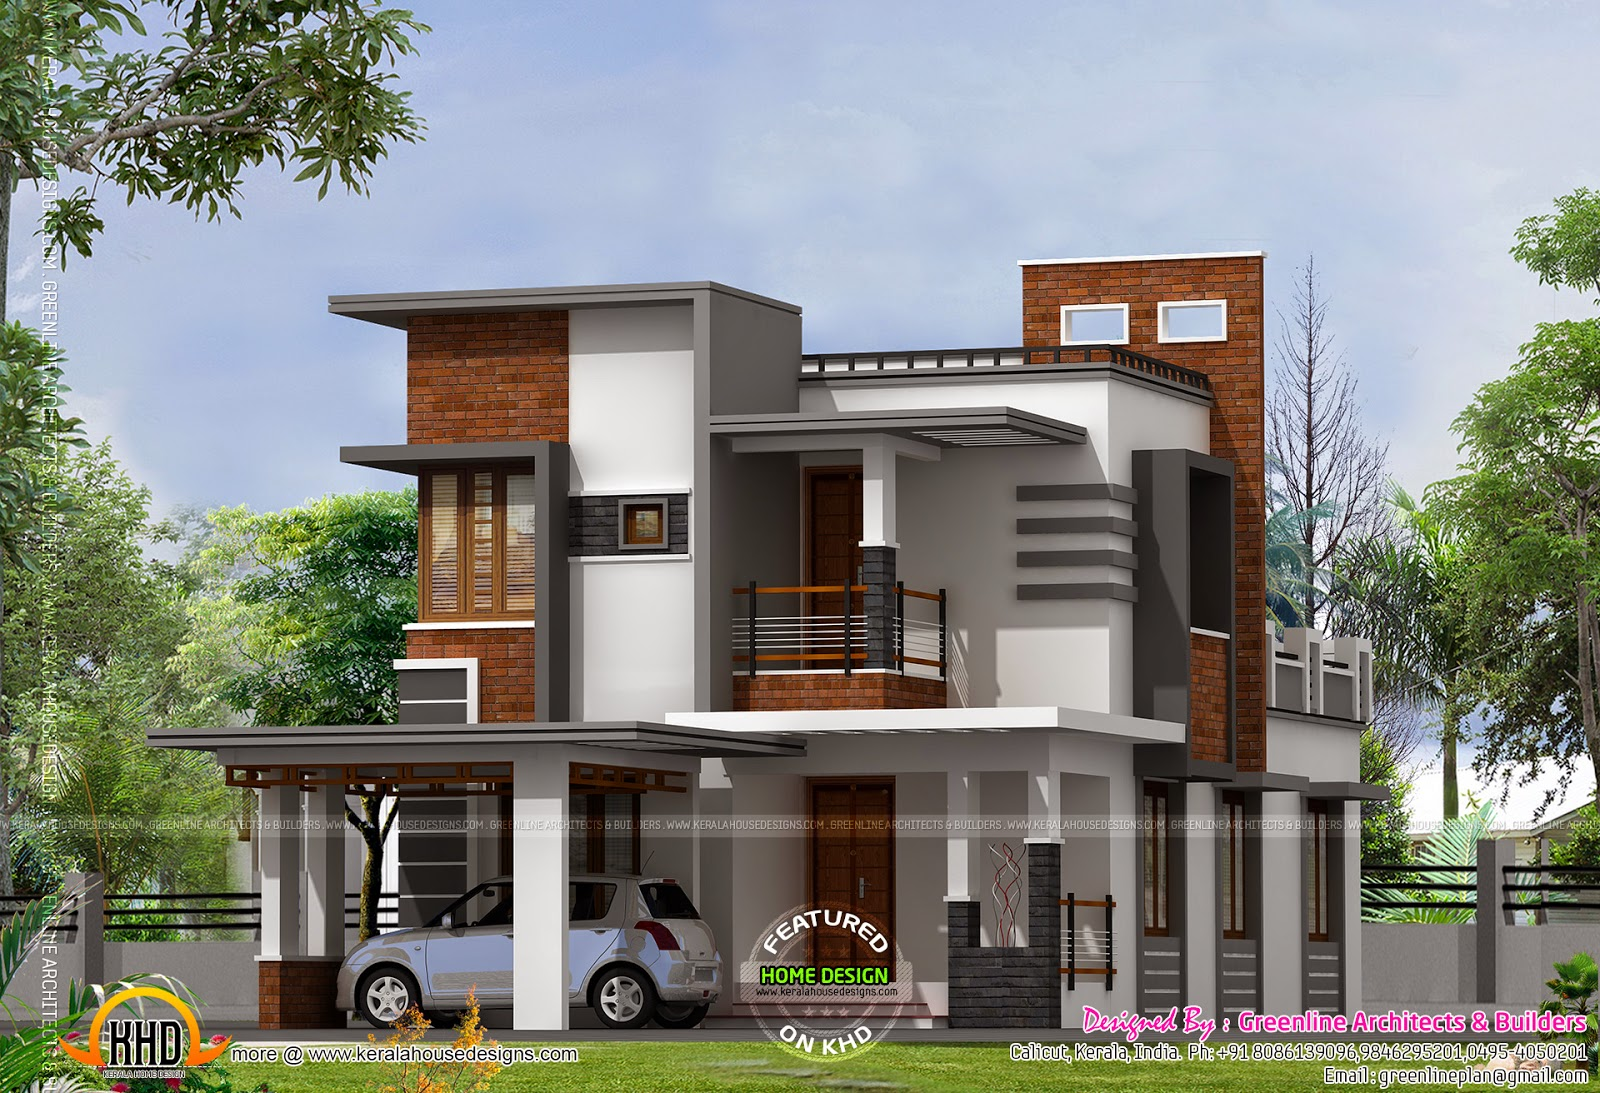 Low cost contemporary house kerala home design and floor for Low cost house plans with photos